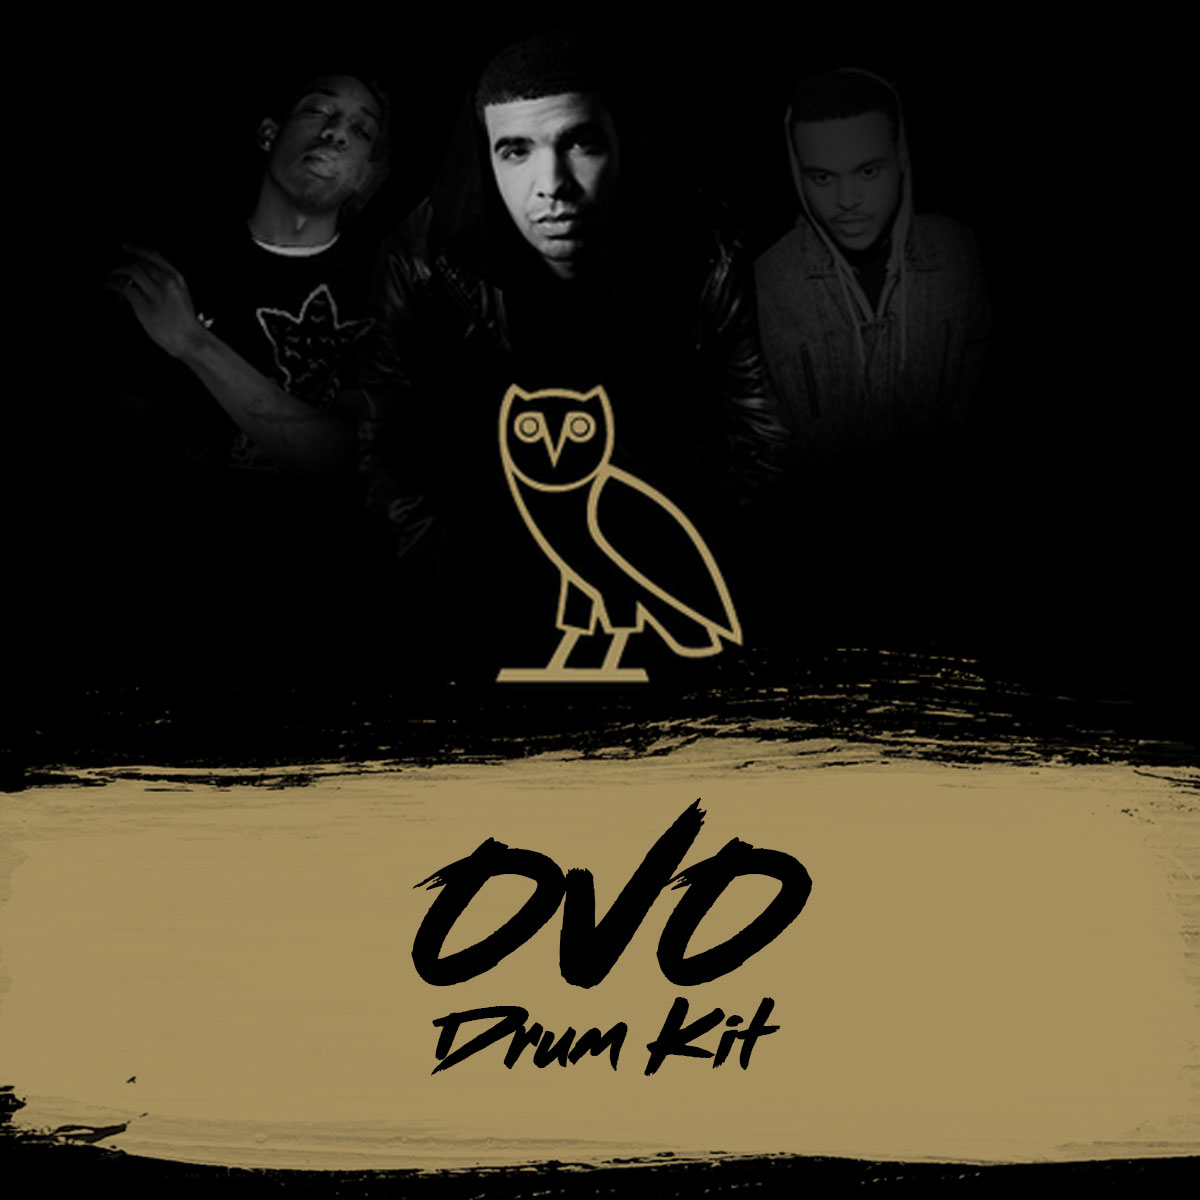 ovo-drum-kit